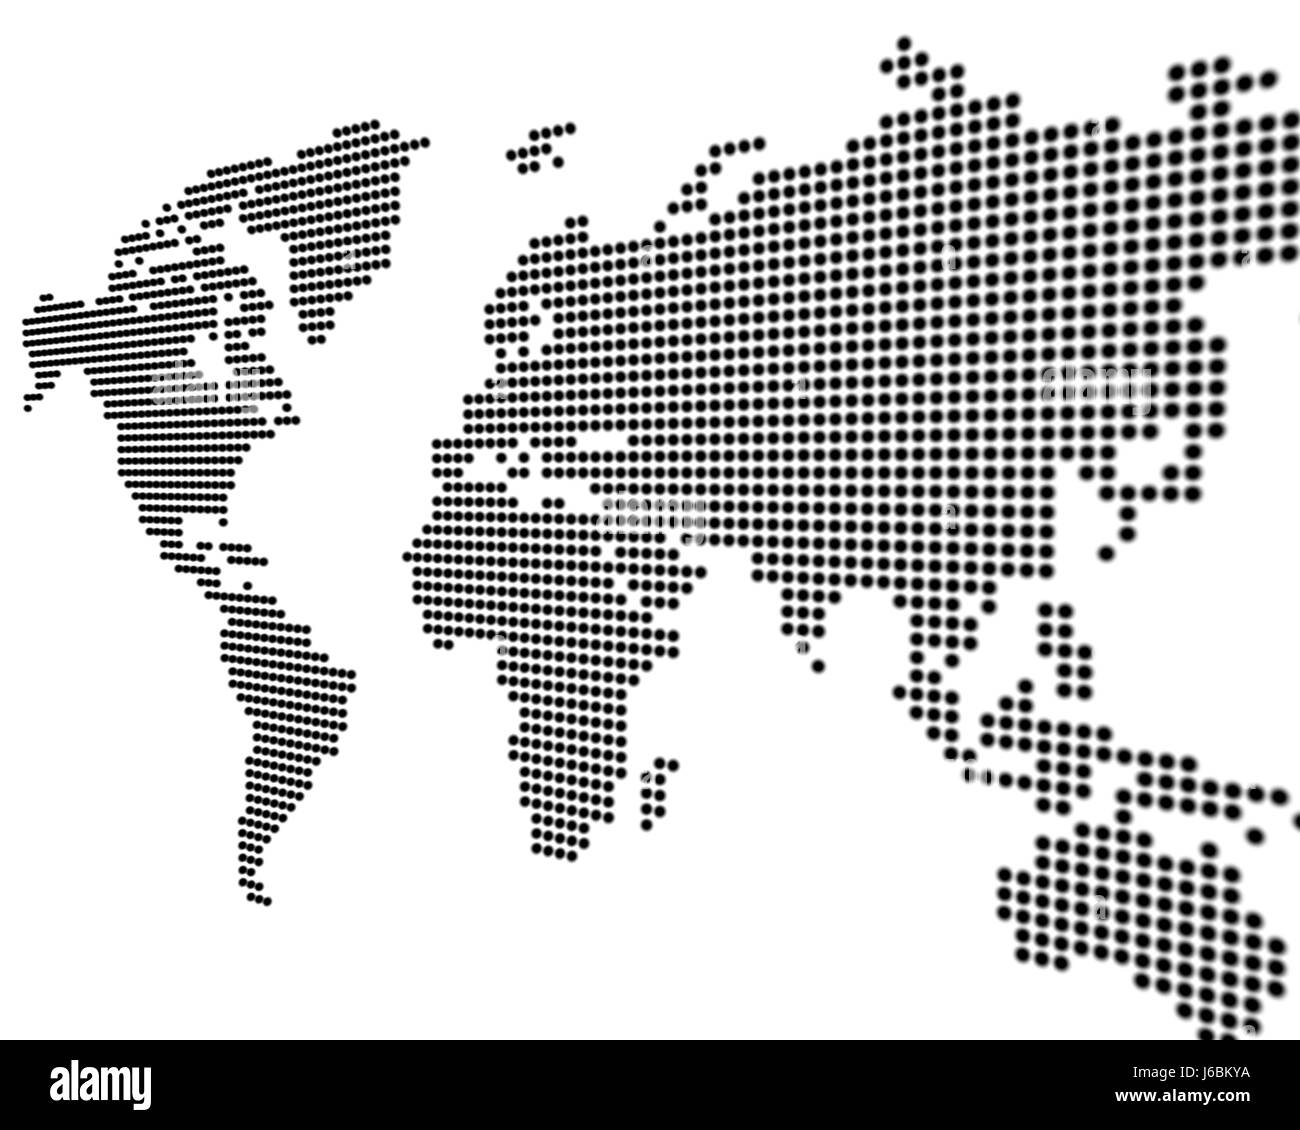 World Atlas Map Of Asia.Map Asia Black And White Stock Photos Images Alamy